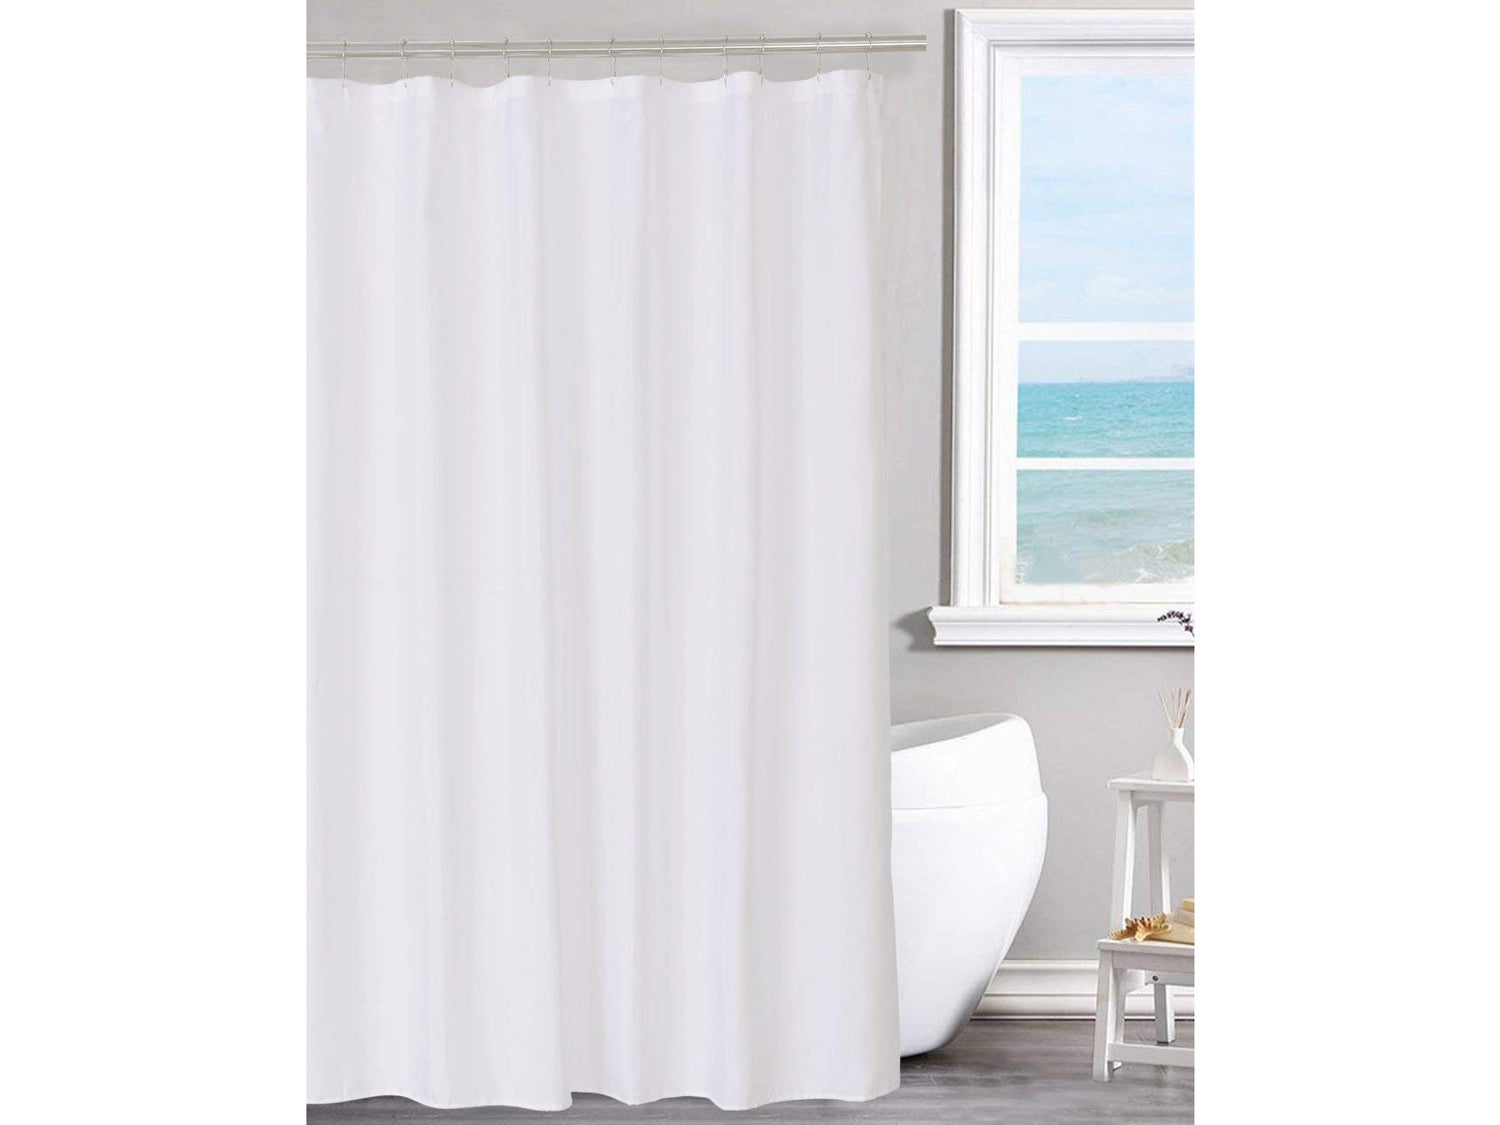 N&Y HOME Fabric Shower Curtain Liner